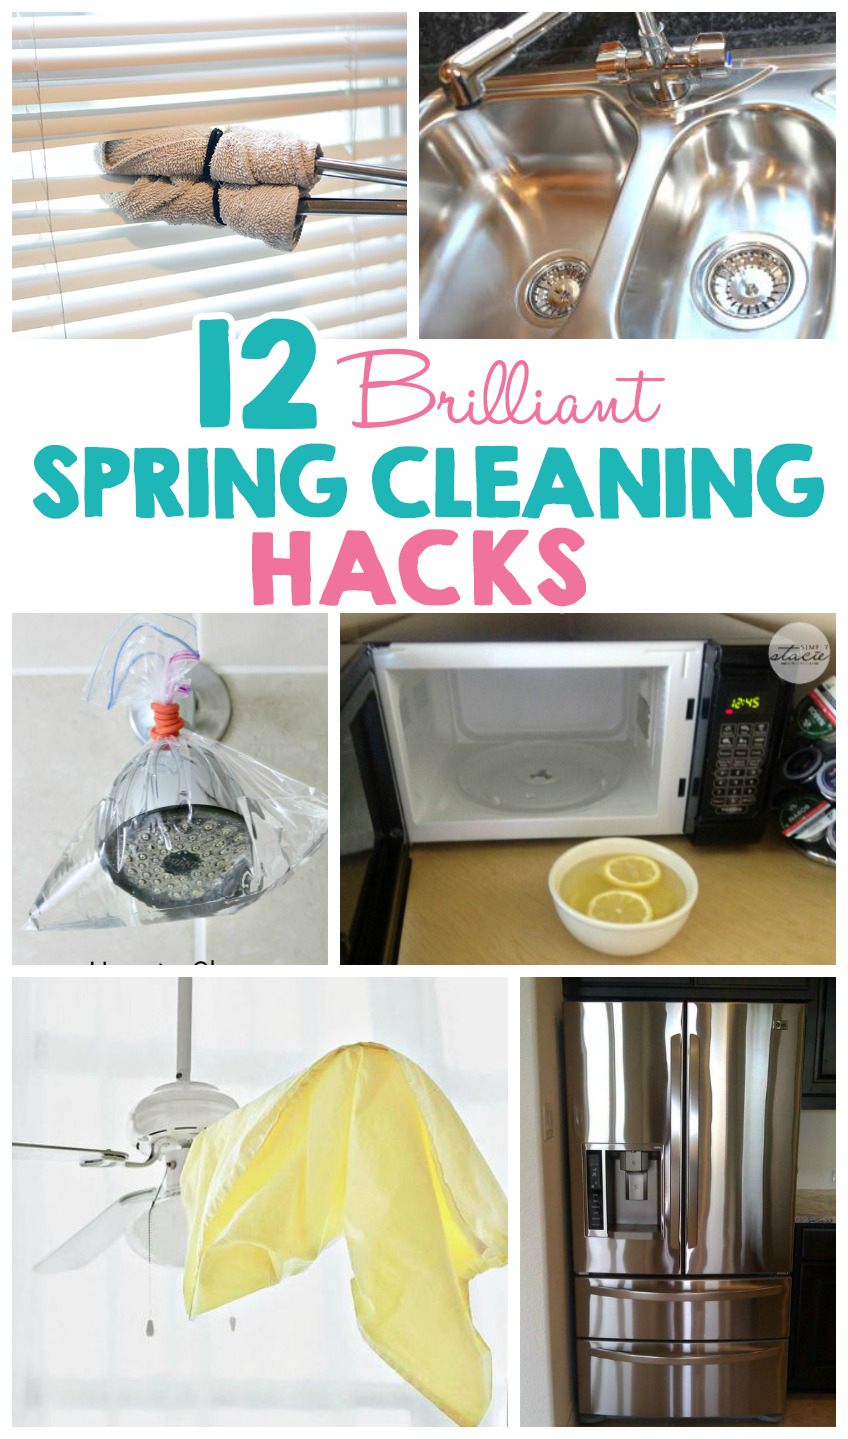 12 Brilliant Spring Cleaning Hacks